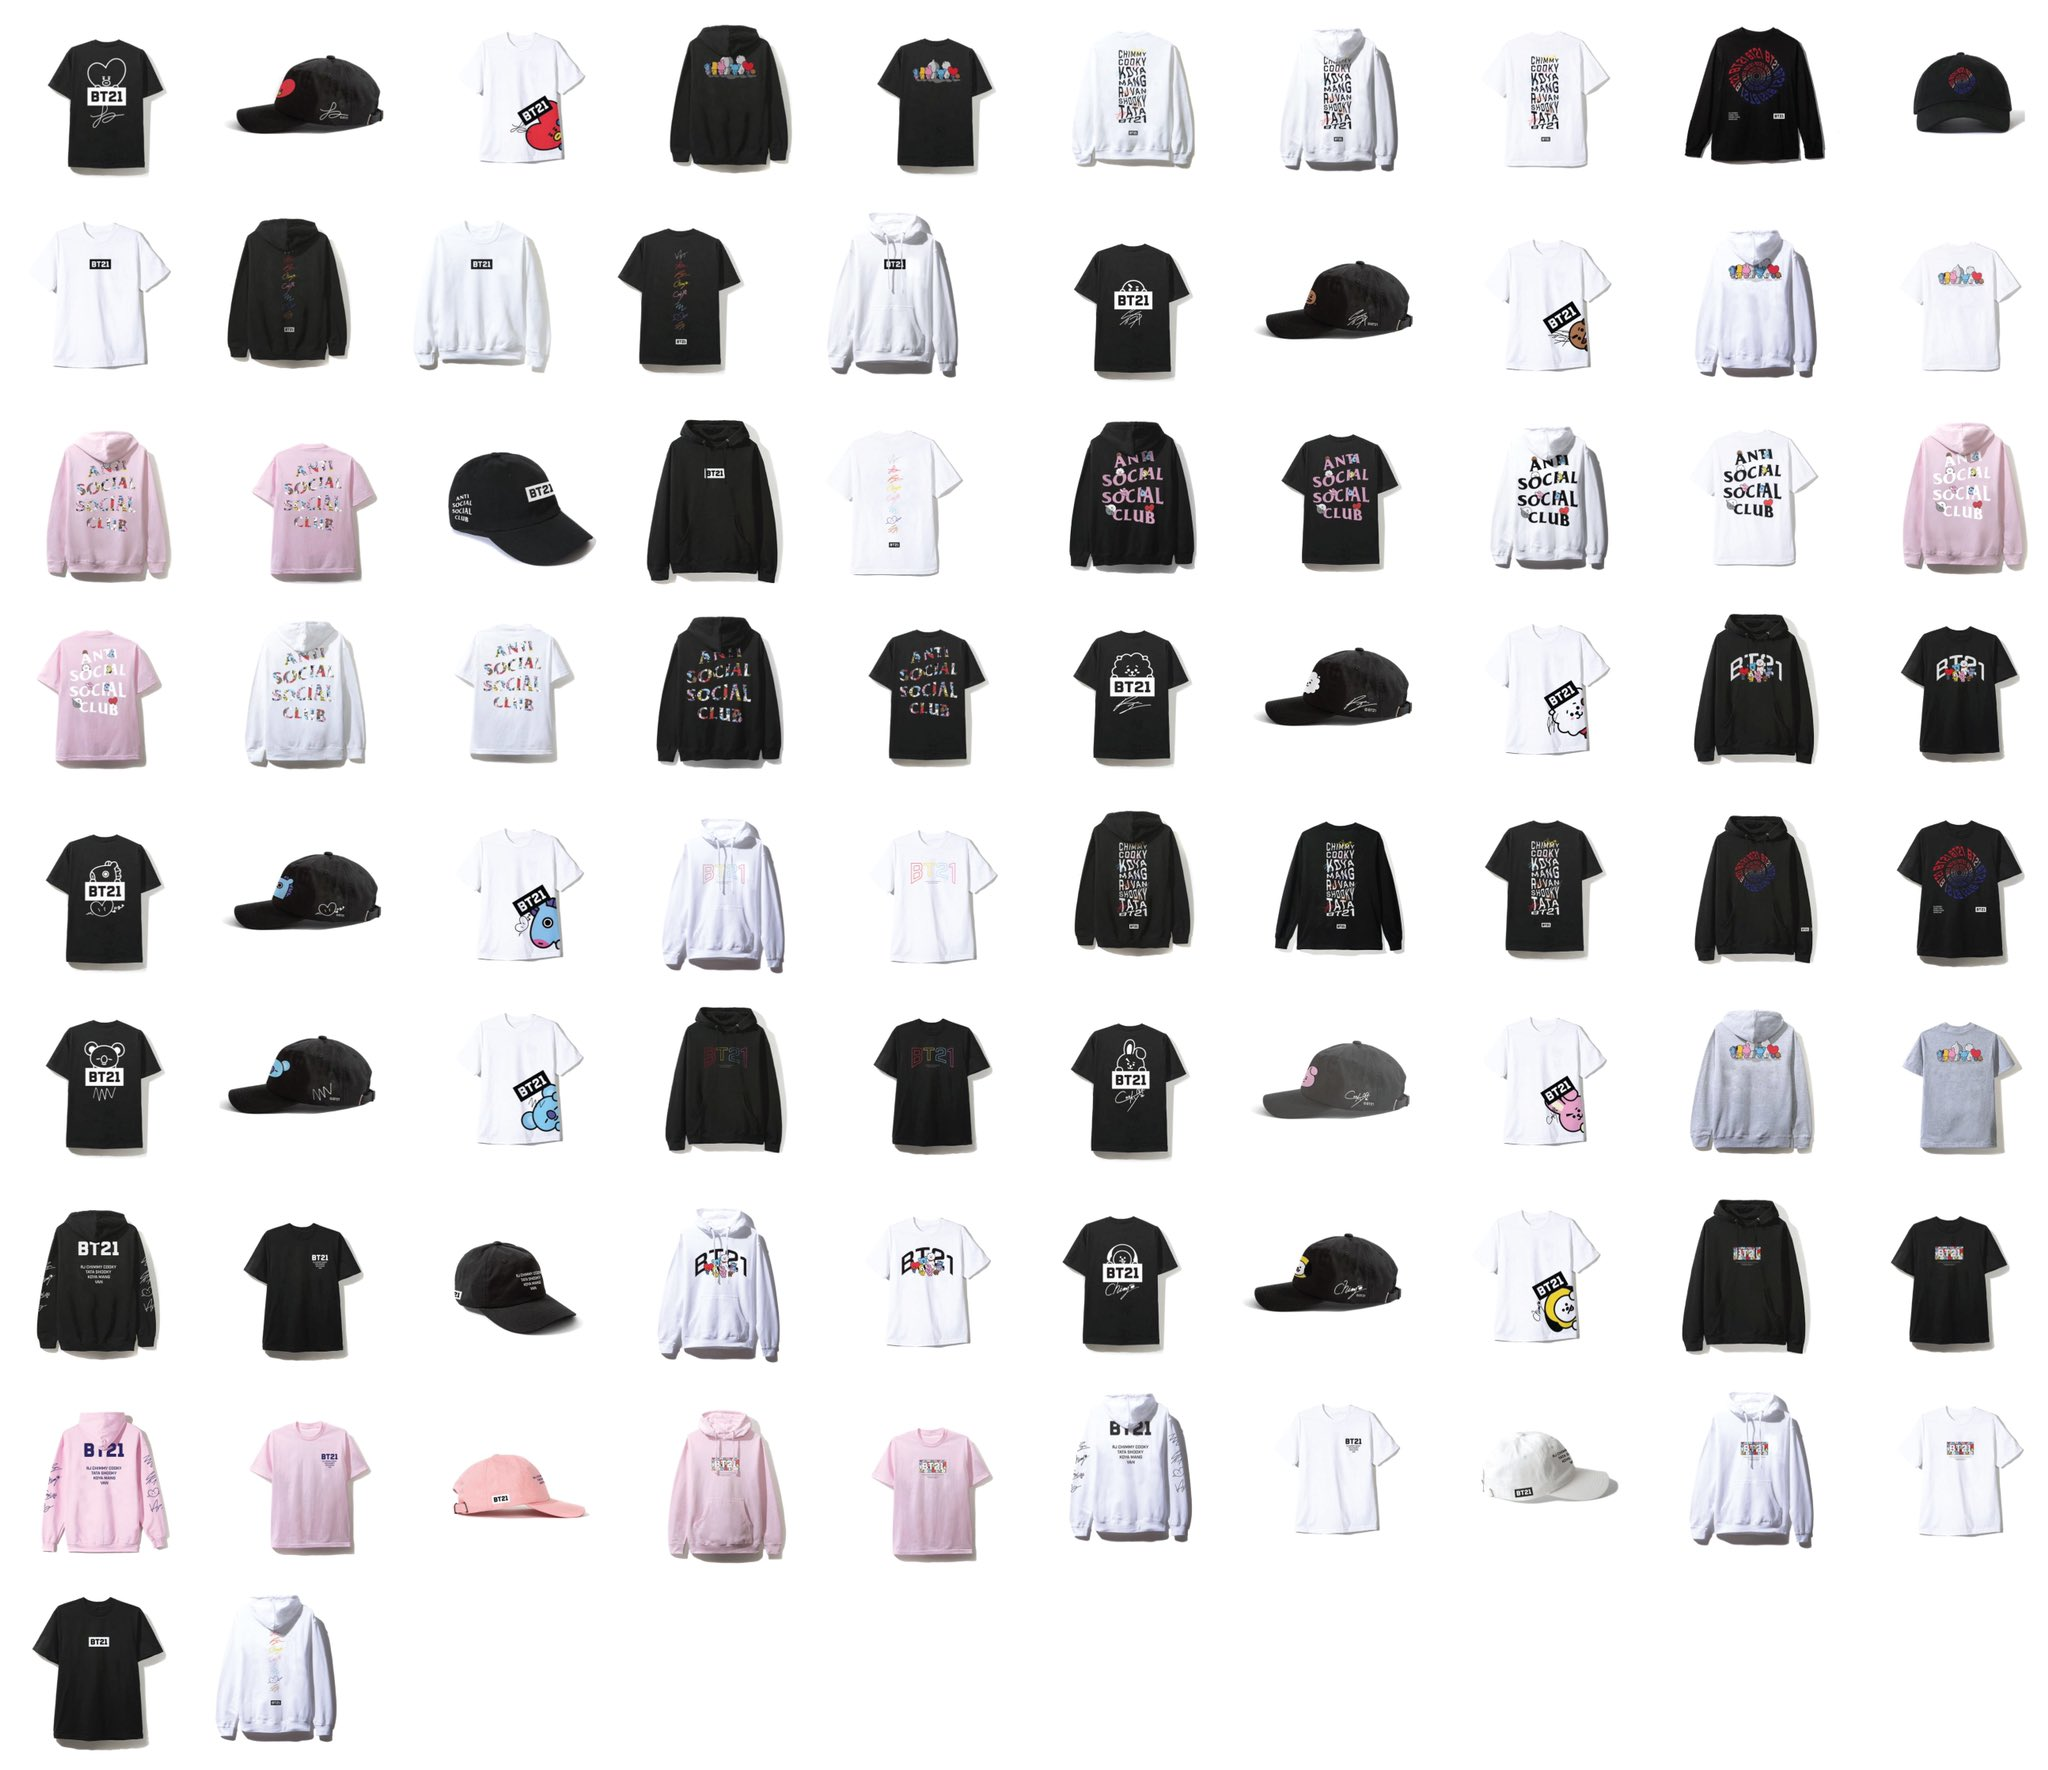 d264acfedbe29 Approximately 50 pieces! BT21 x Anti Social Social Club - Celebrity ...